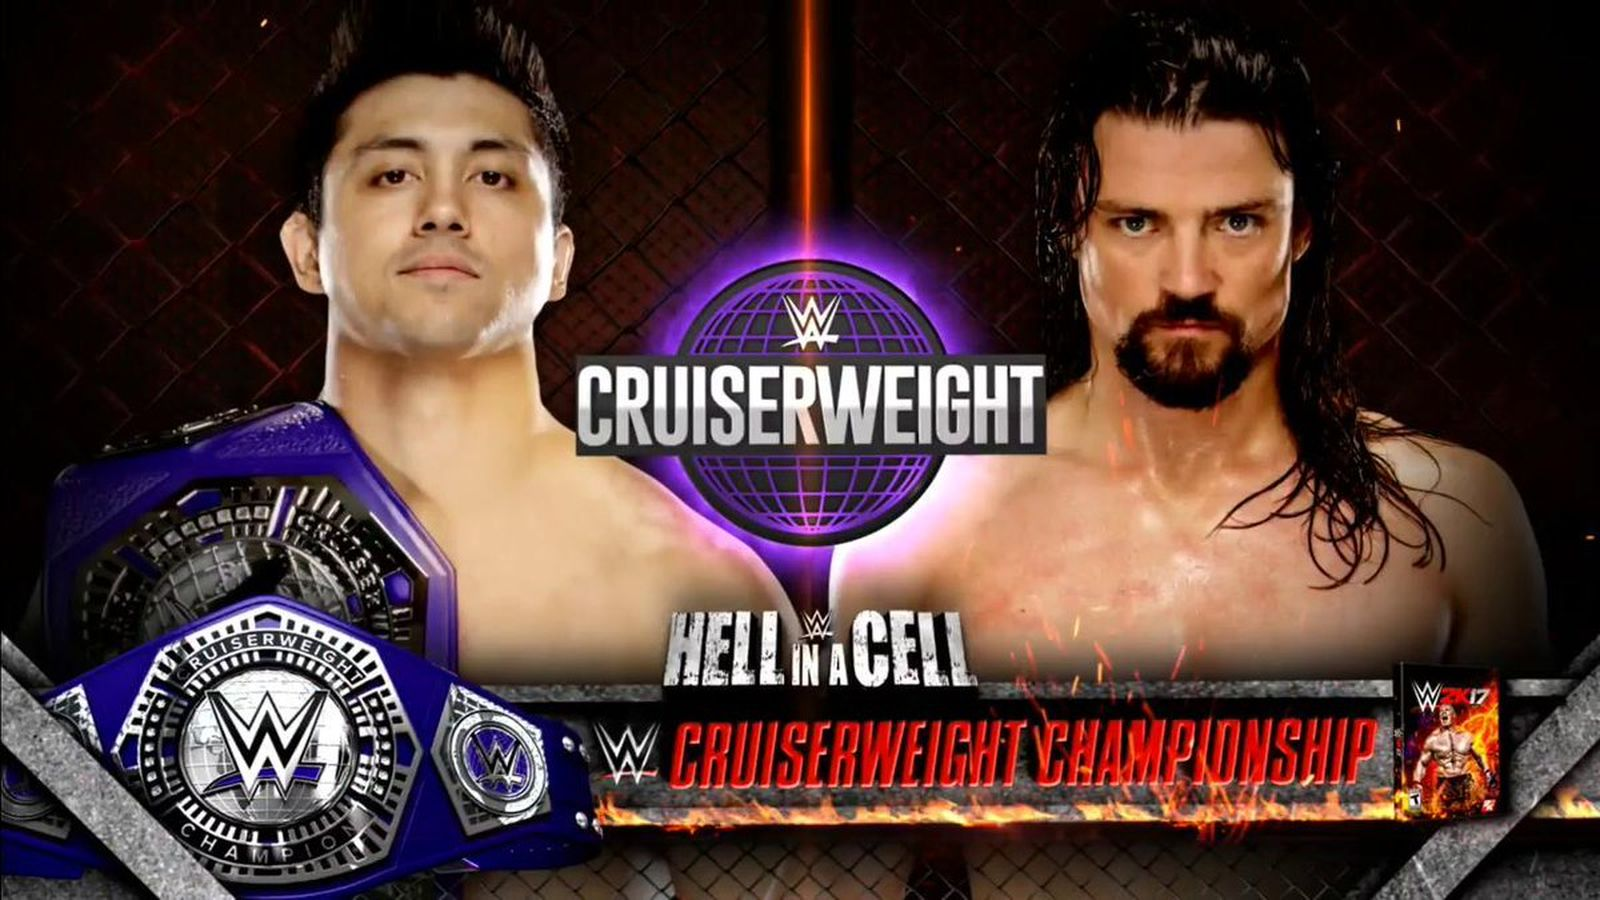 Match promo card for TJ Perkins v. Brian Kendrick at 'Hell in a Cell'